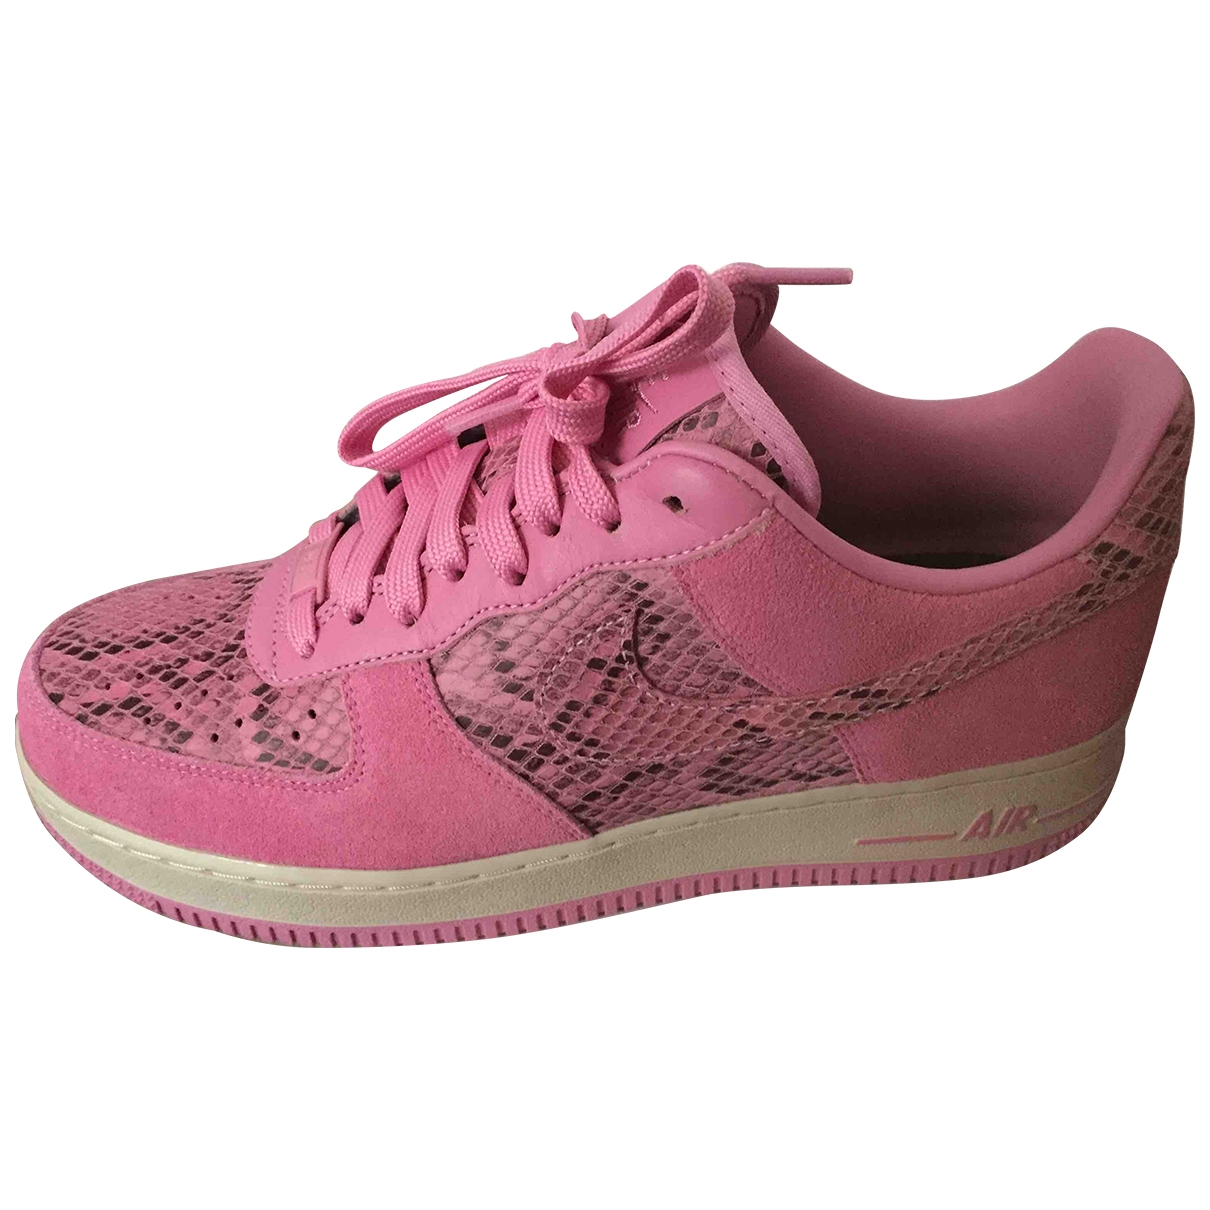 Nike Air Force 1 Pink Leather Trainers for Men 42 EU